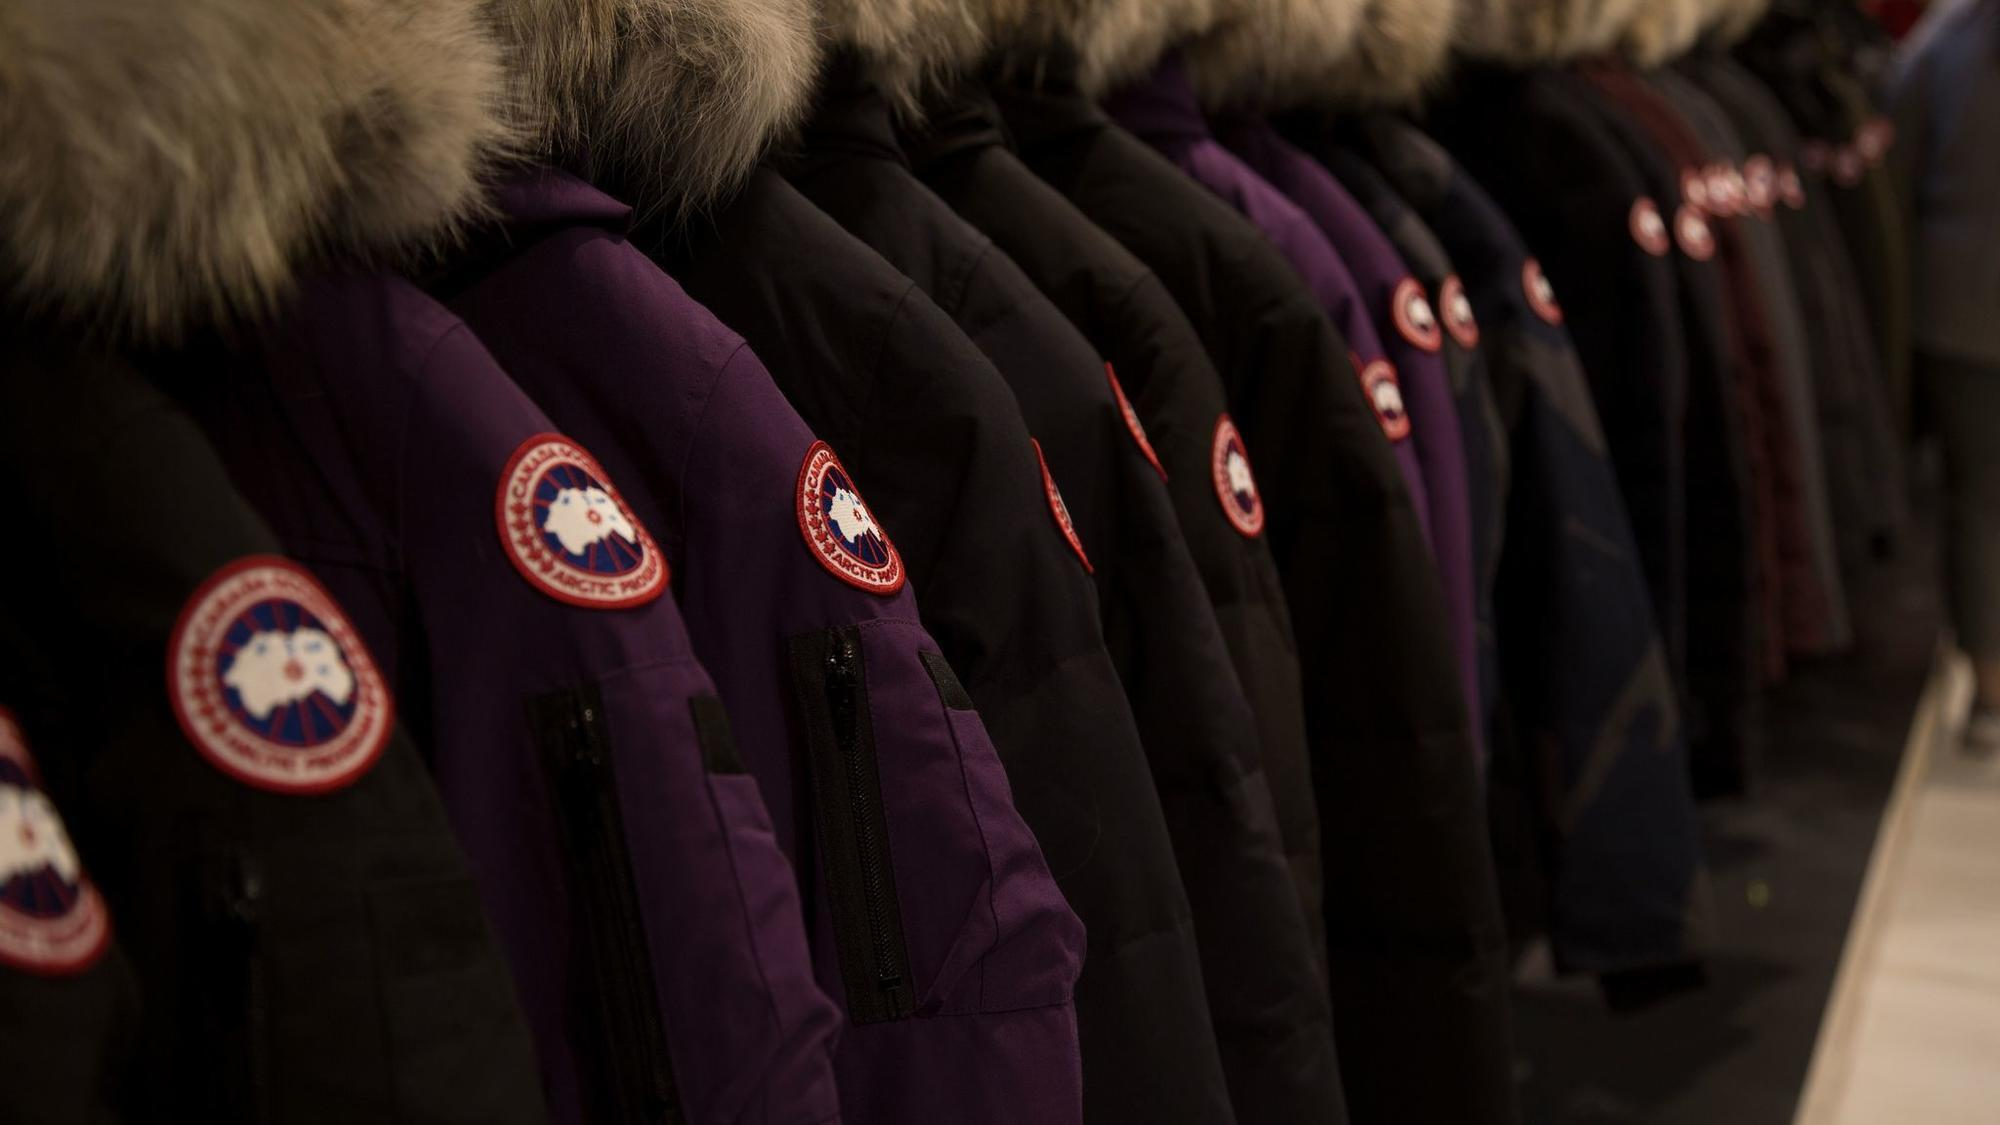 How does everyone afford these Canada Goose jackets, Chicago's expensive winter uniform? - Chicago Tribune